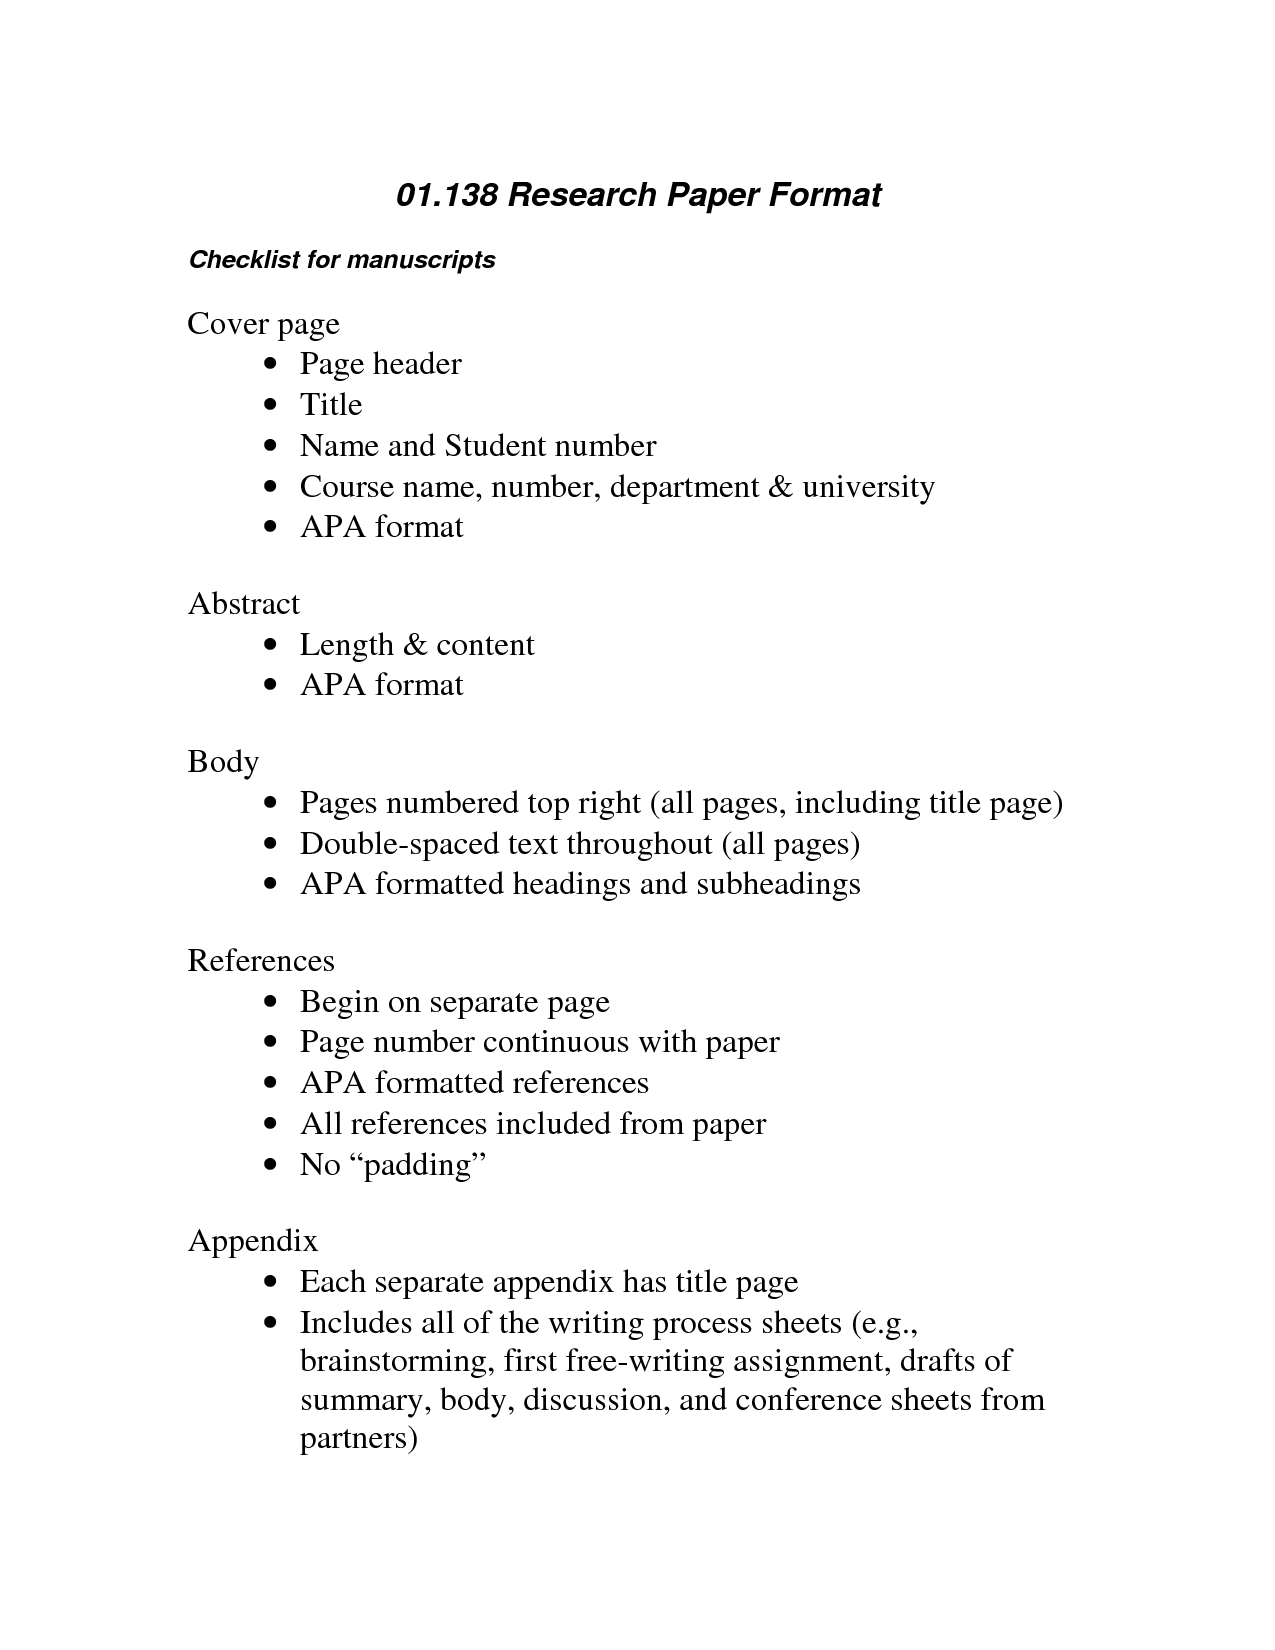 APA Research Paper Outline: Examples and Template